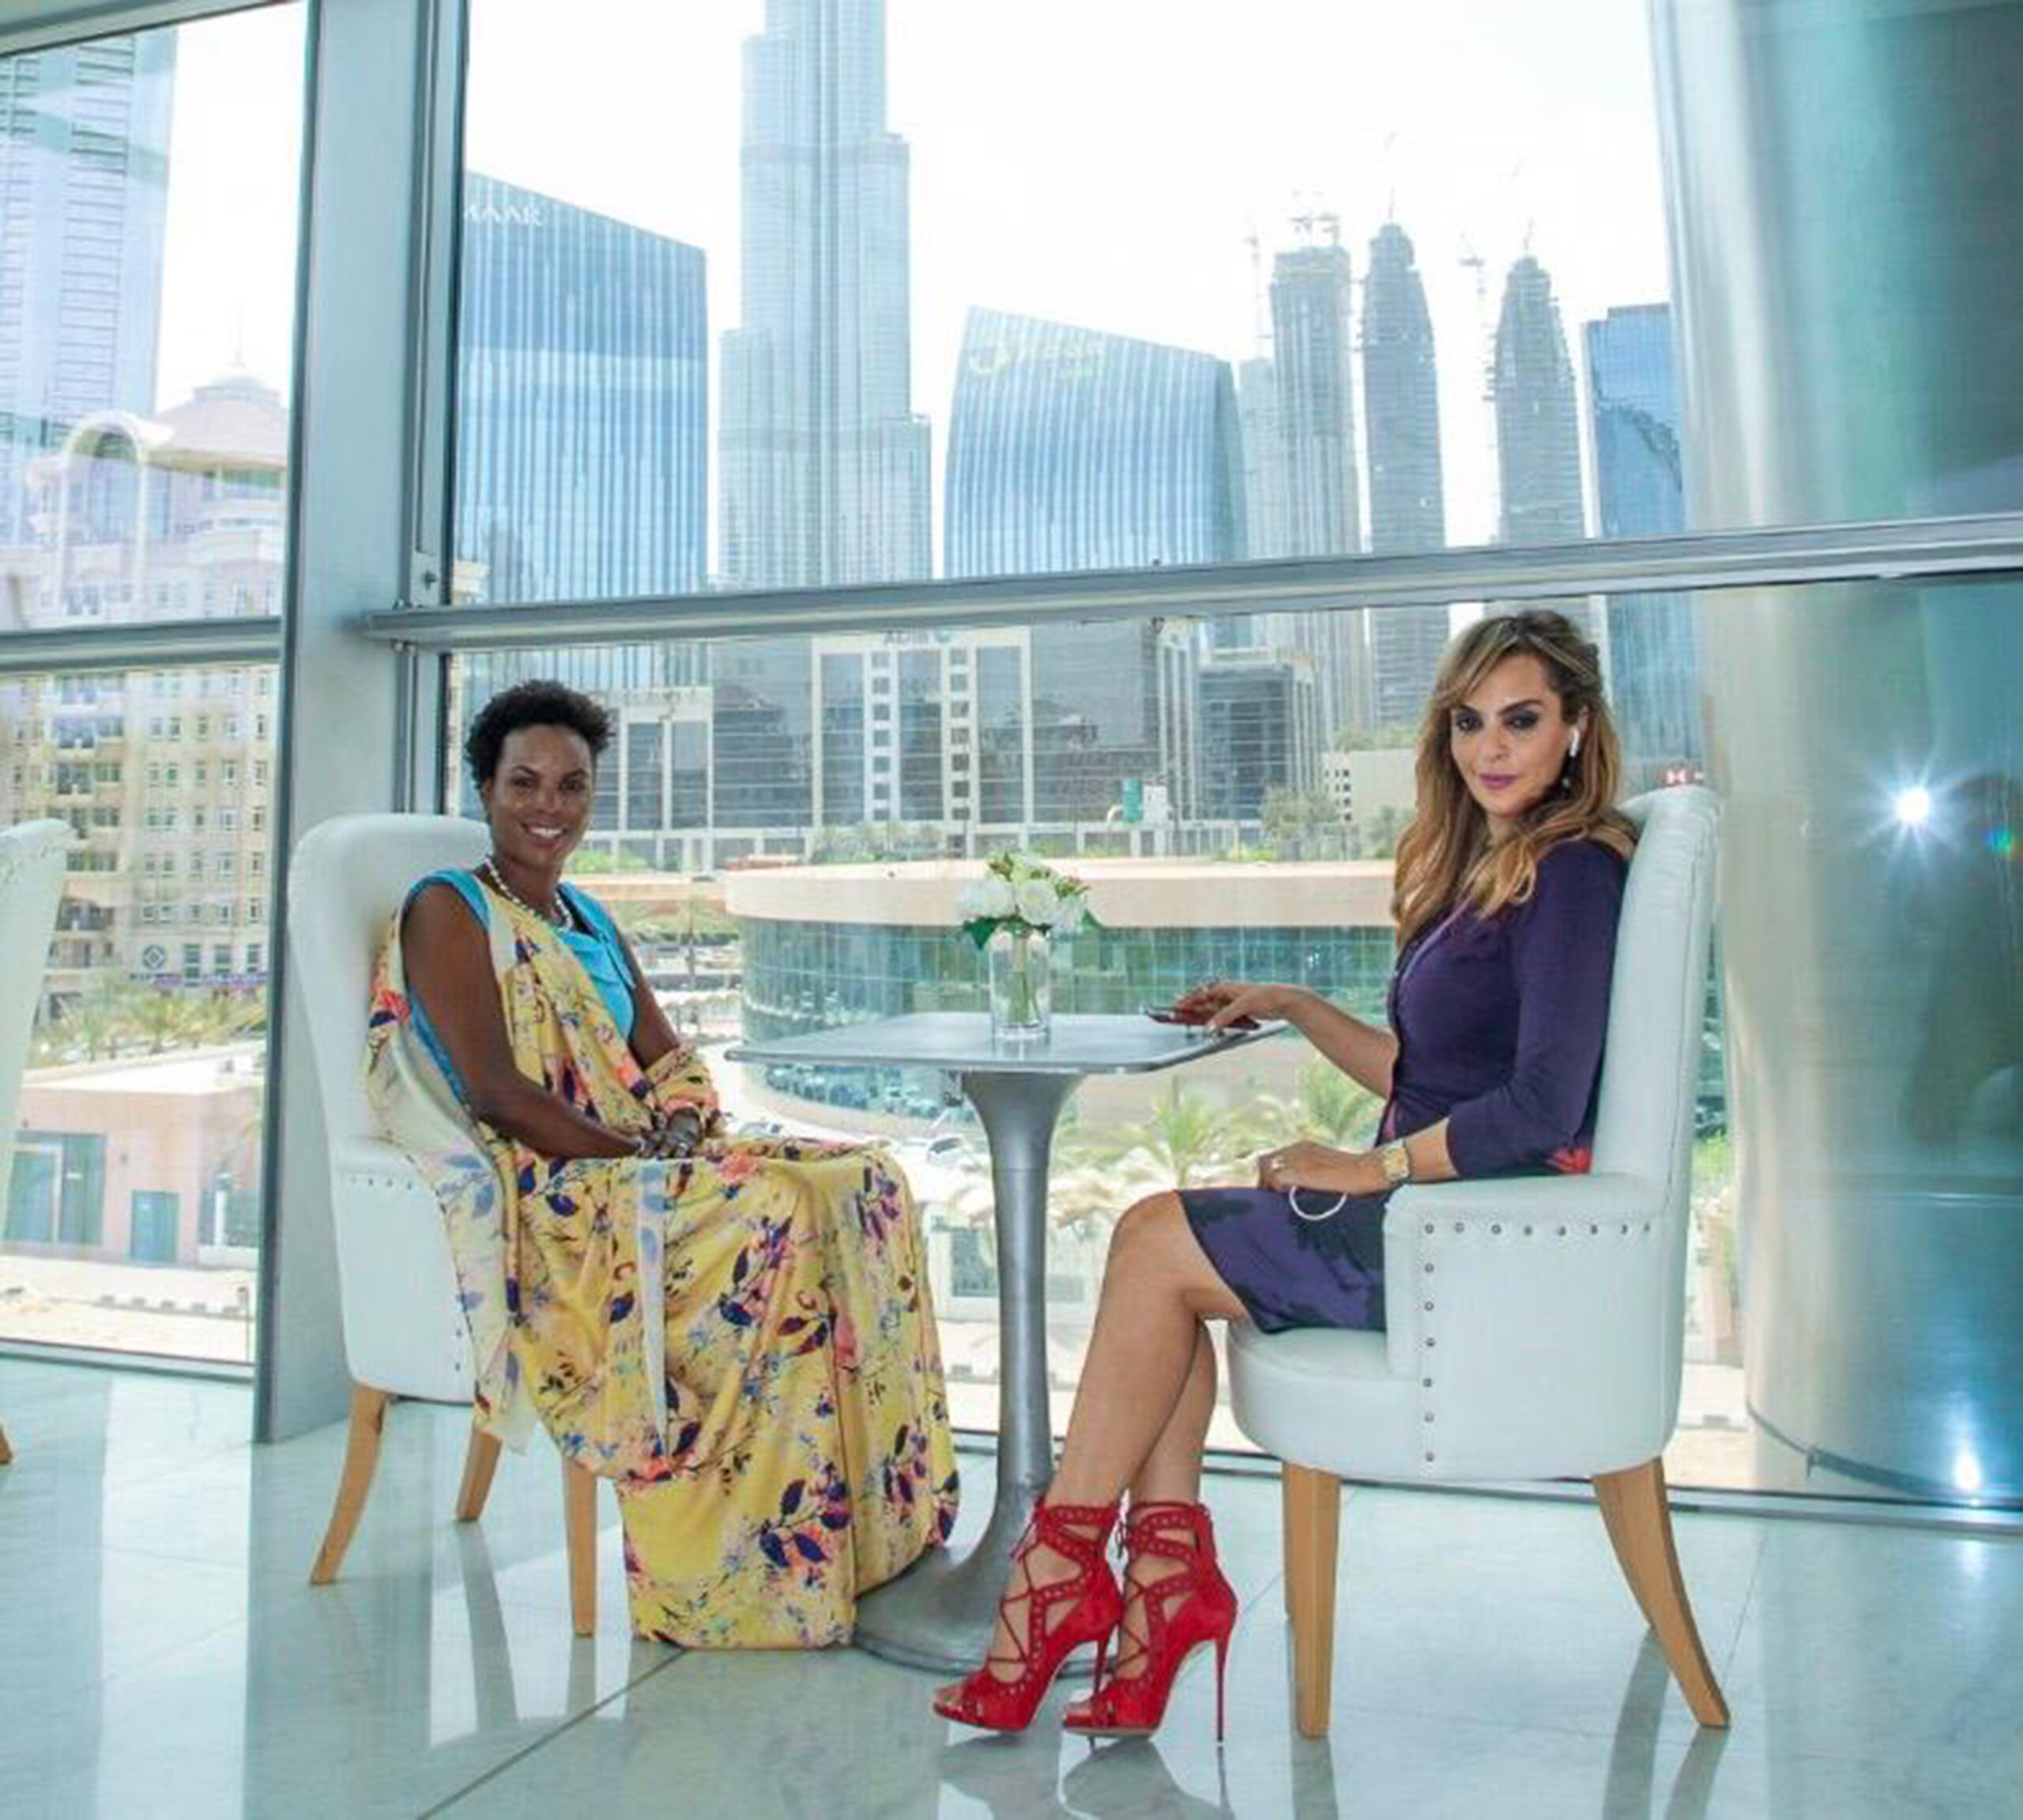 Dr. Rasha Kelej, CEO of Merck Foundation & President, Merck More Than a Mother during her meeting with H.E. Madam ANGELINE NDAYISHIMIYE, The First Lady of Burundi and Ambassador of Merck More Than a Mother